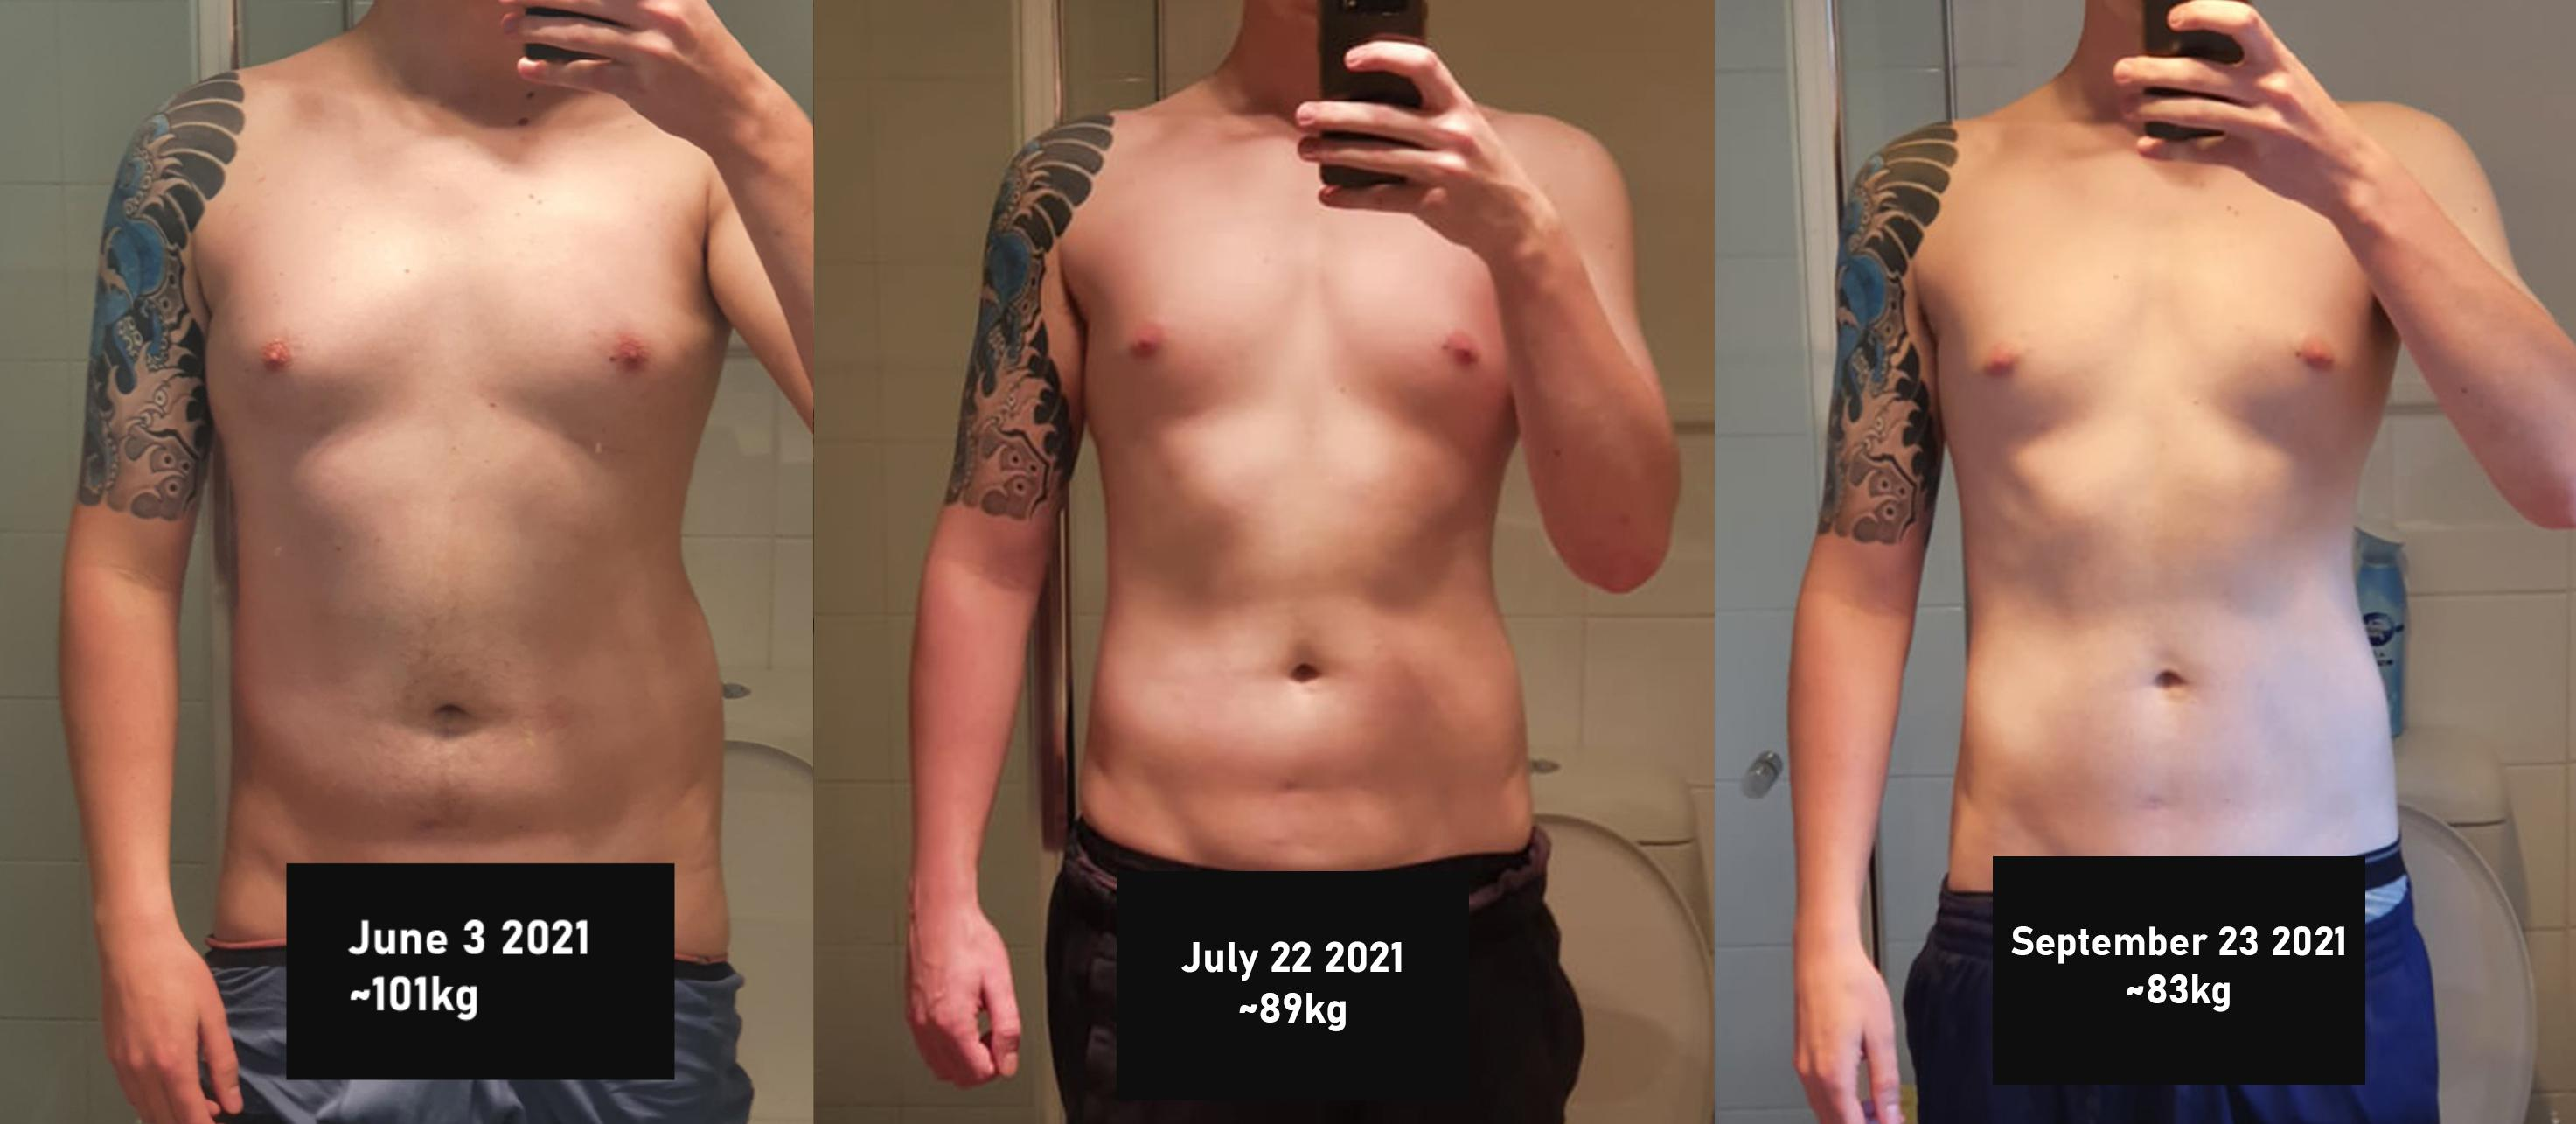 6'4 Male Before and After 40 lbs Weight Loss 222 lbs to 182 lbs